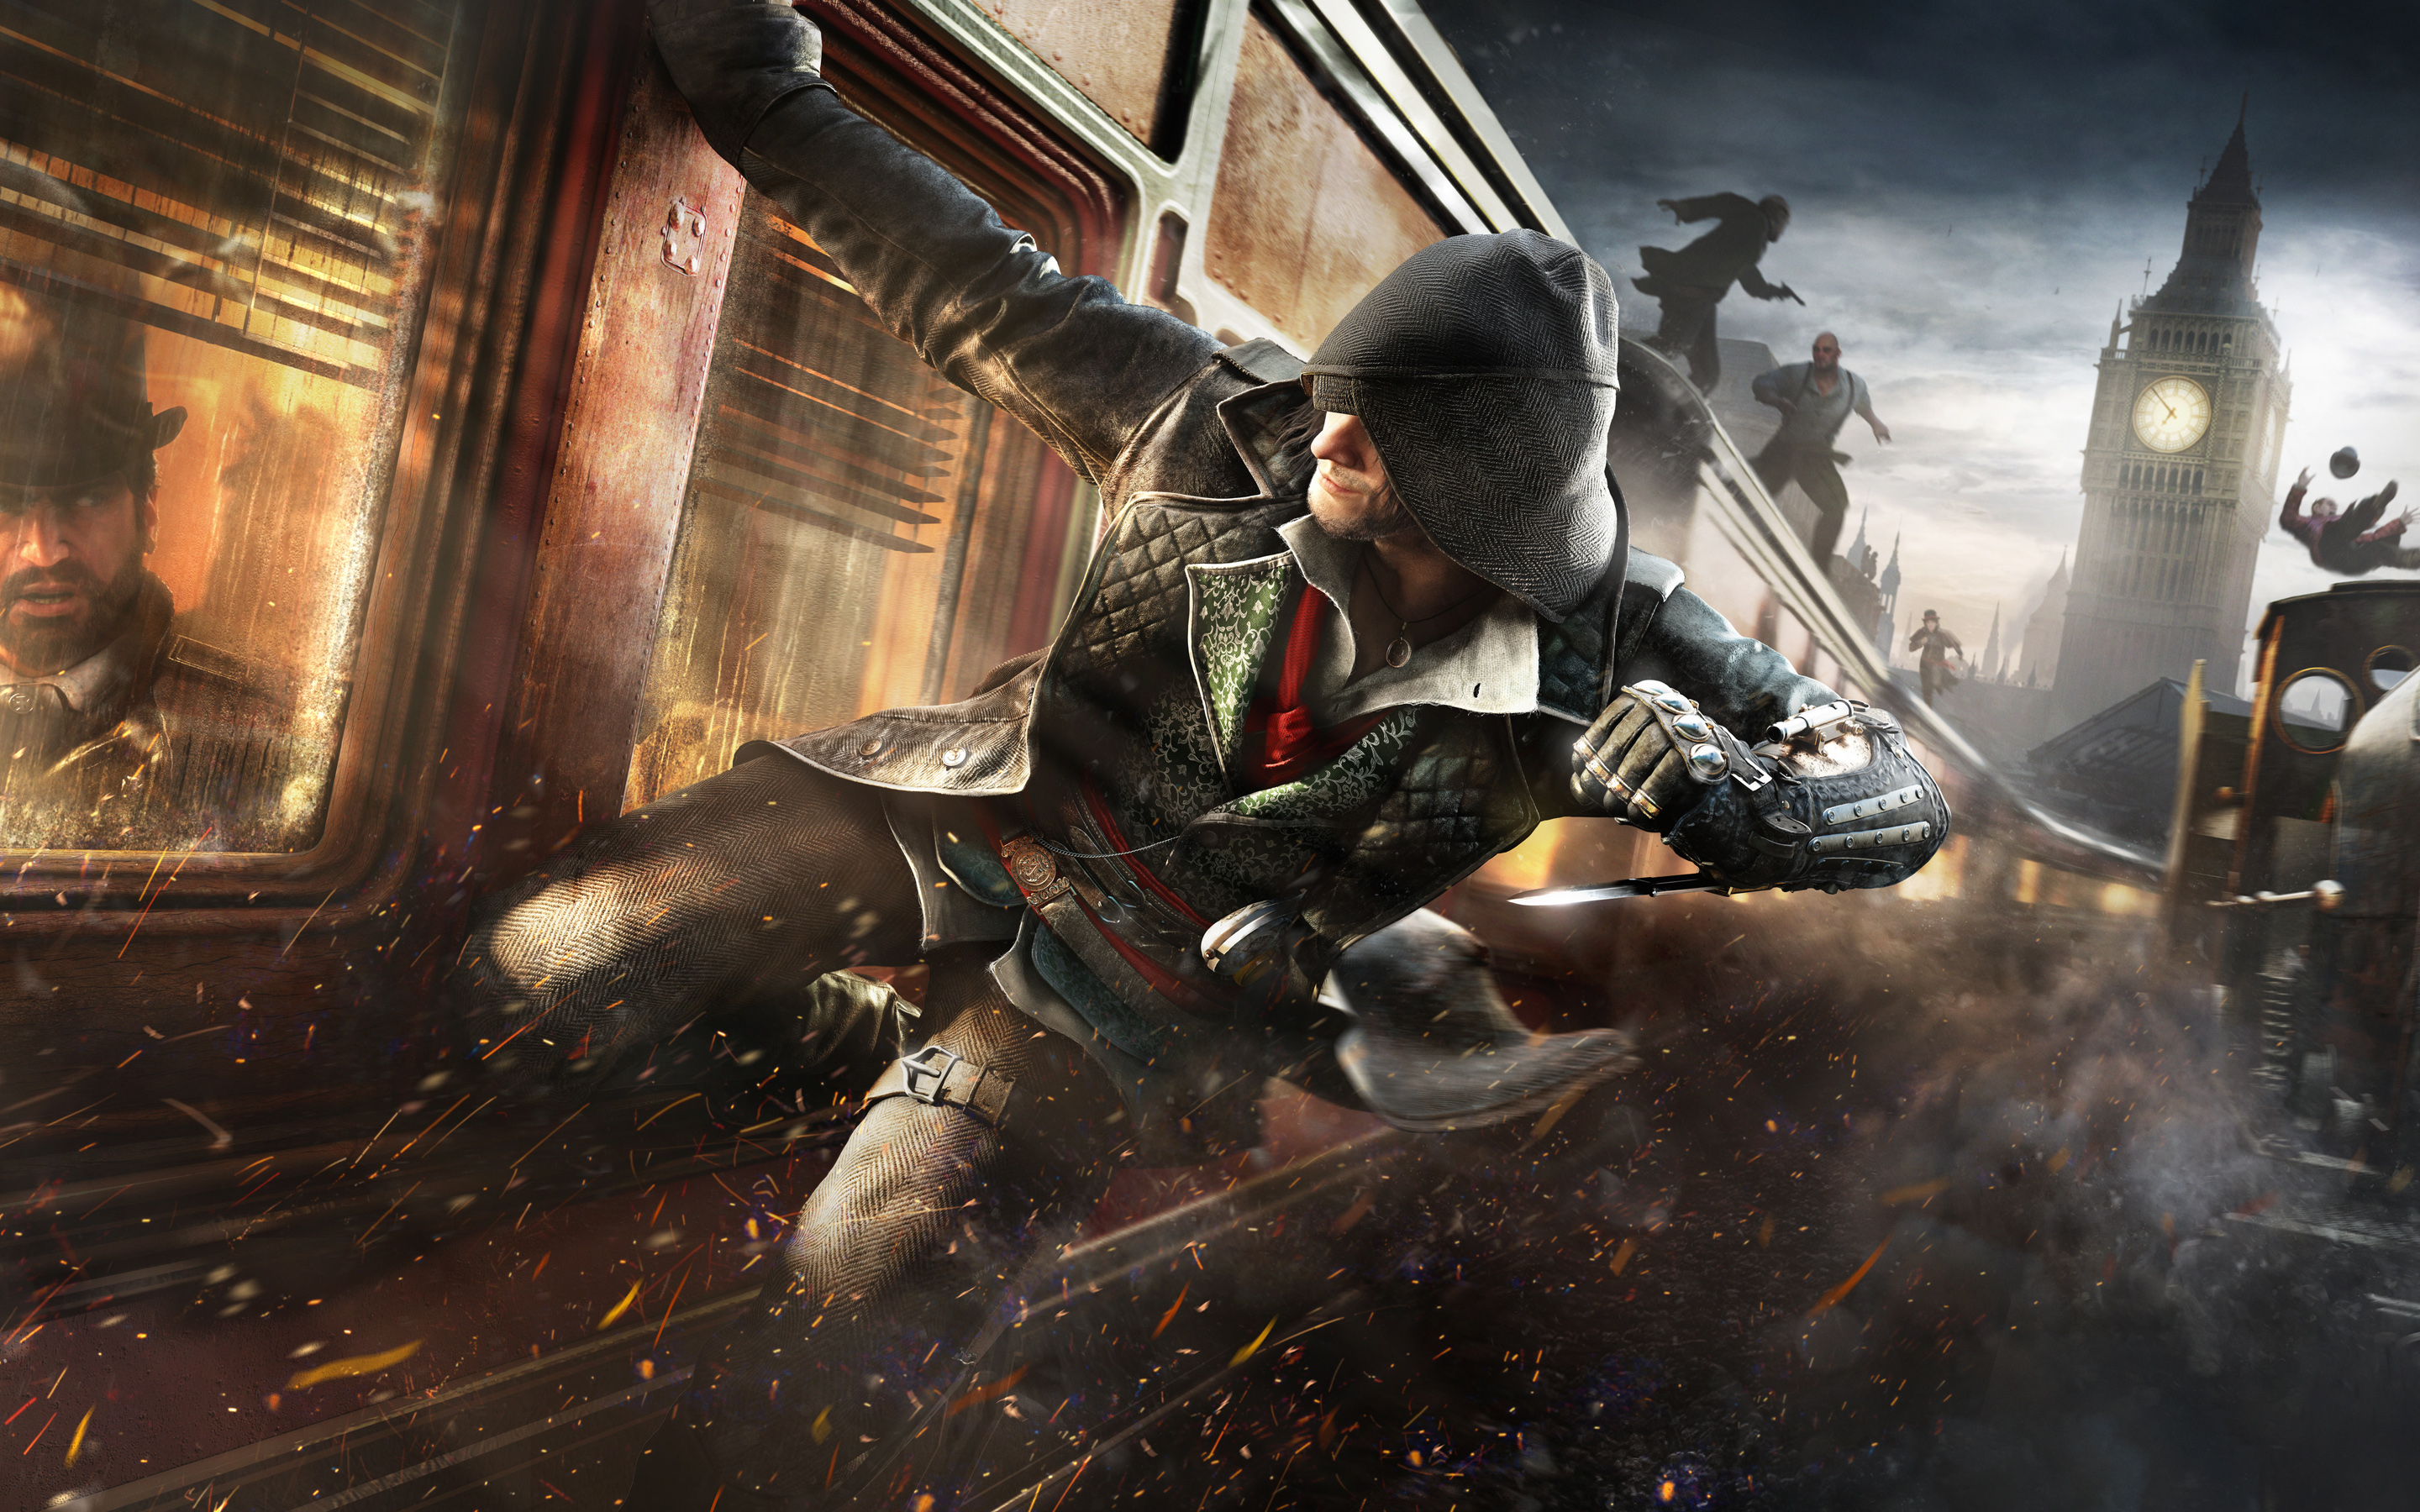 Assassins Creed Syundcate 1